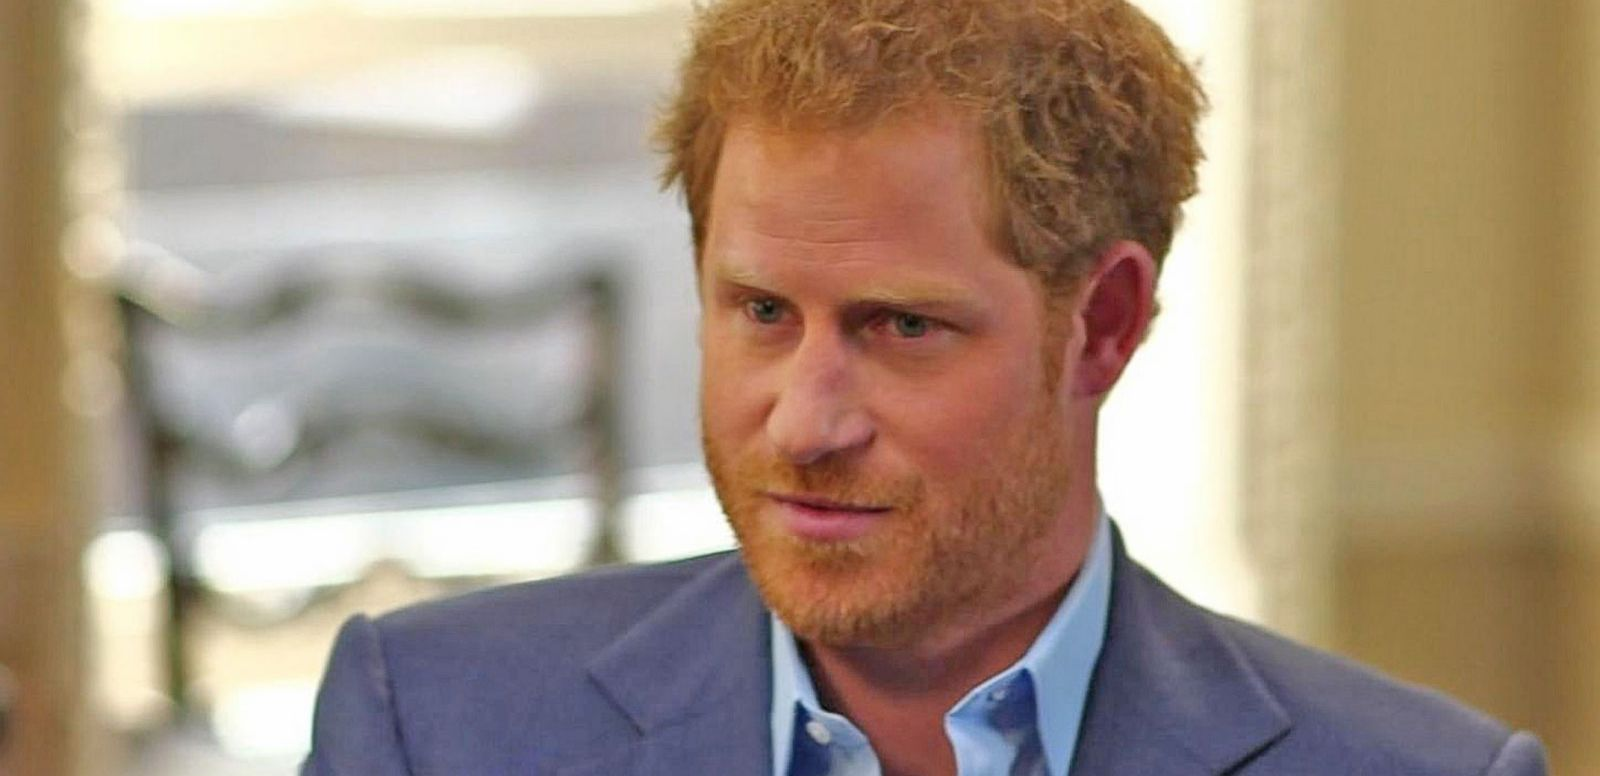 VIDEO: Prince Harry Opens Up About Princess Diana's Death